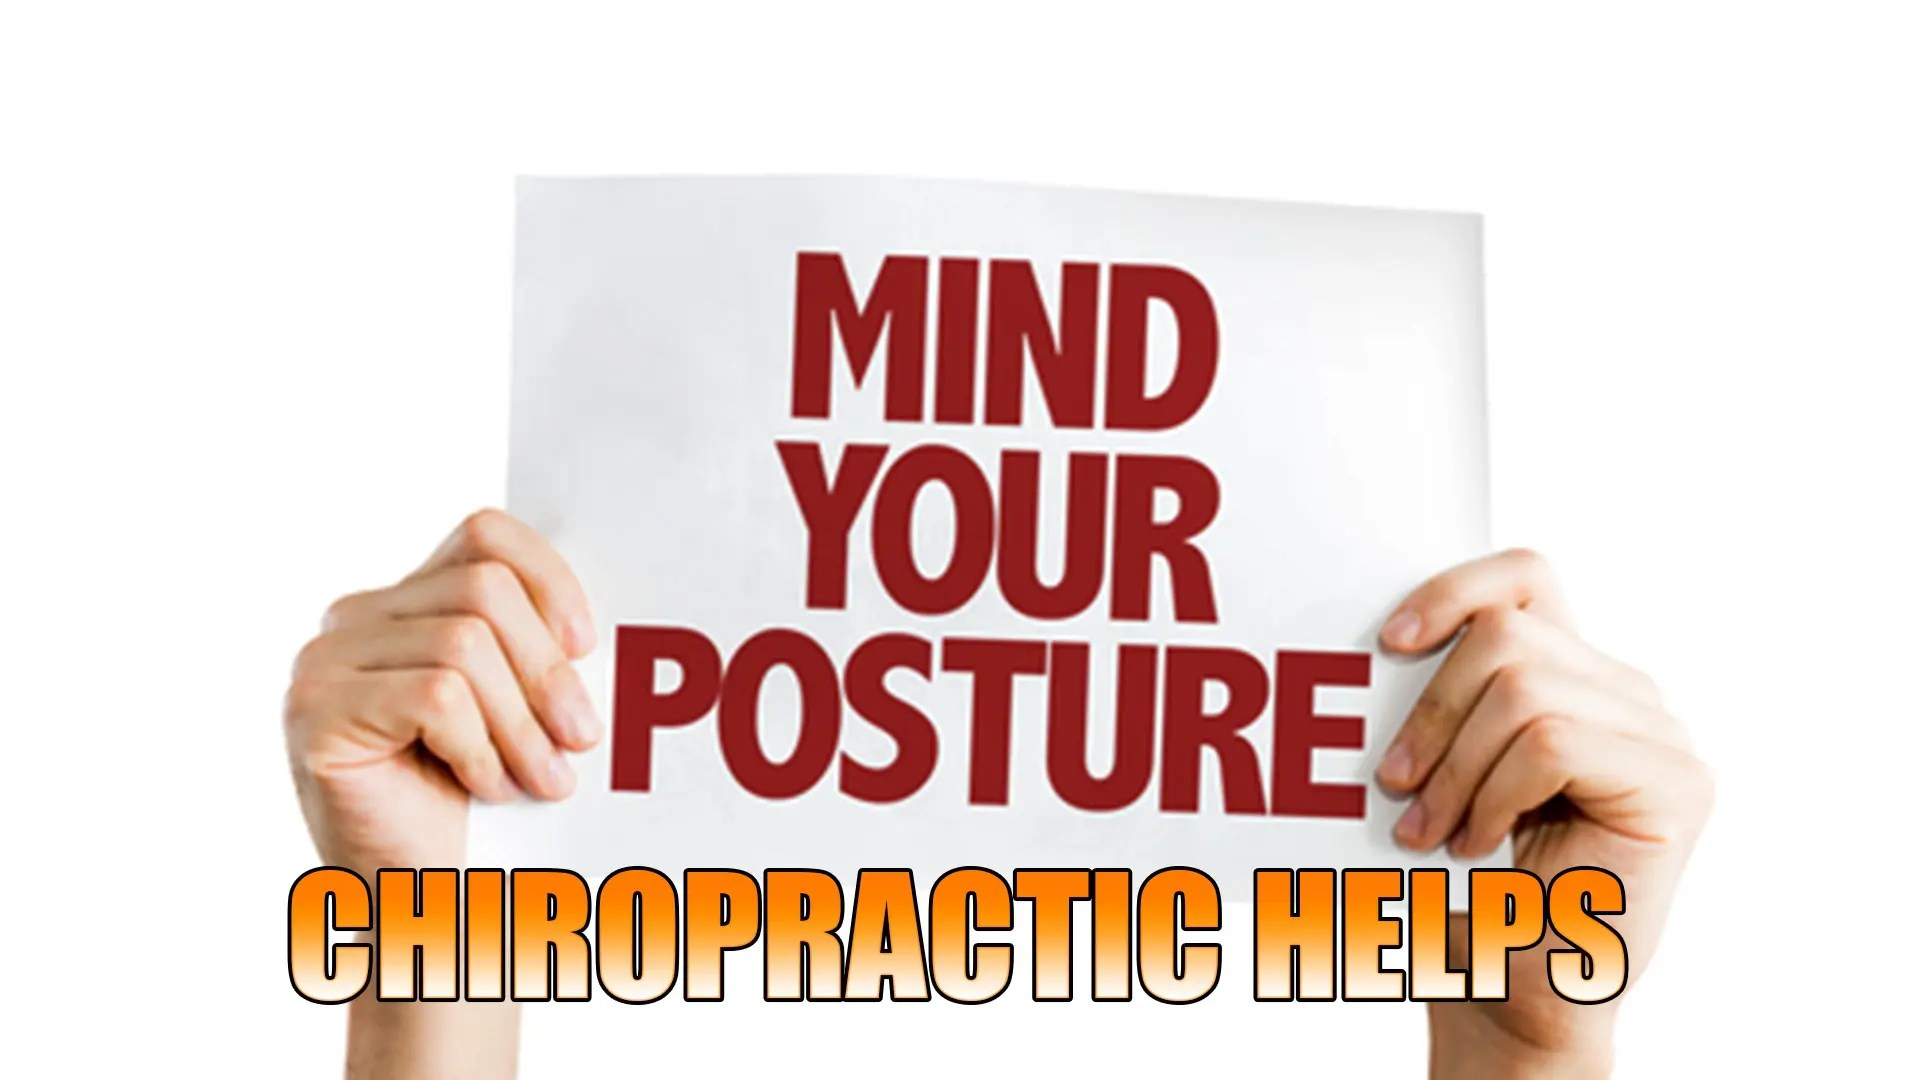 Improve Posture With Chiropractic | El Paso, TX.